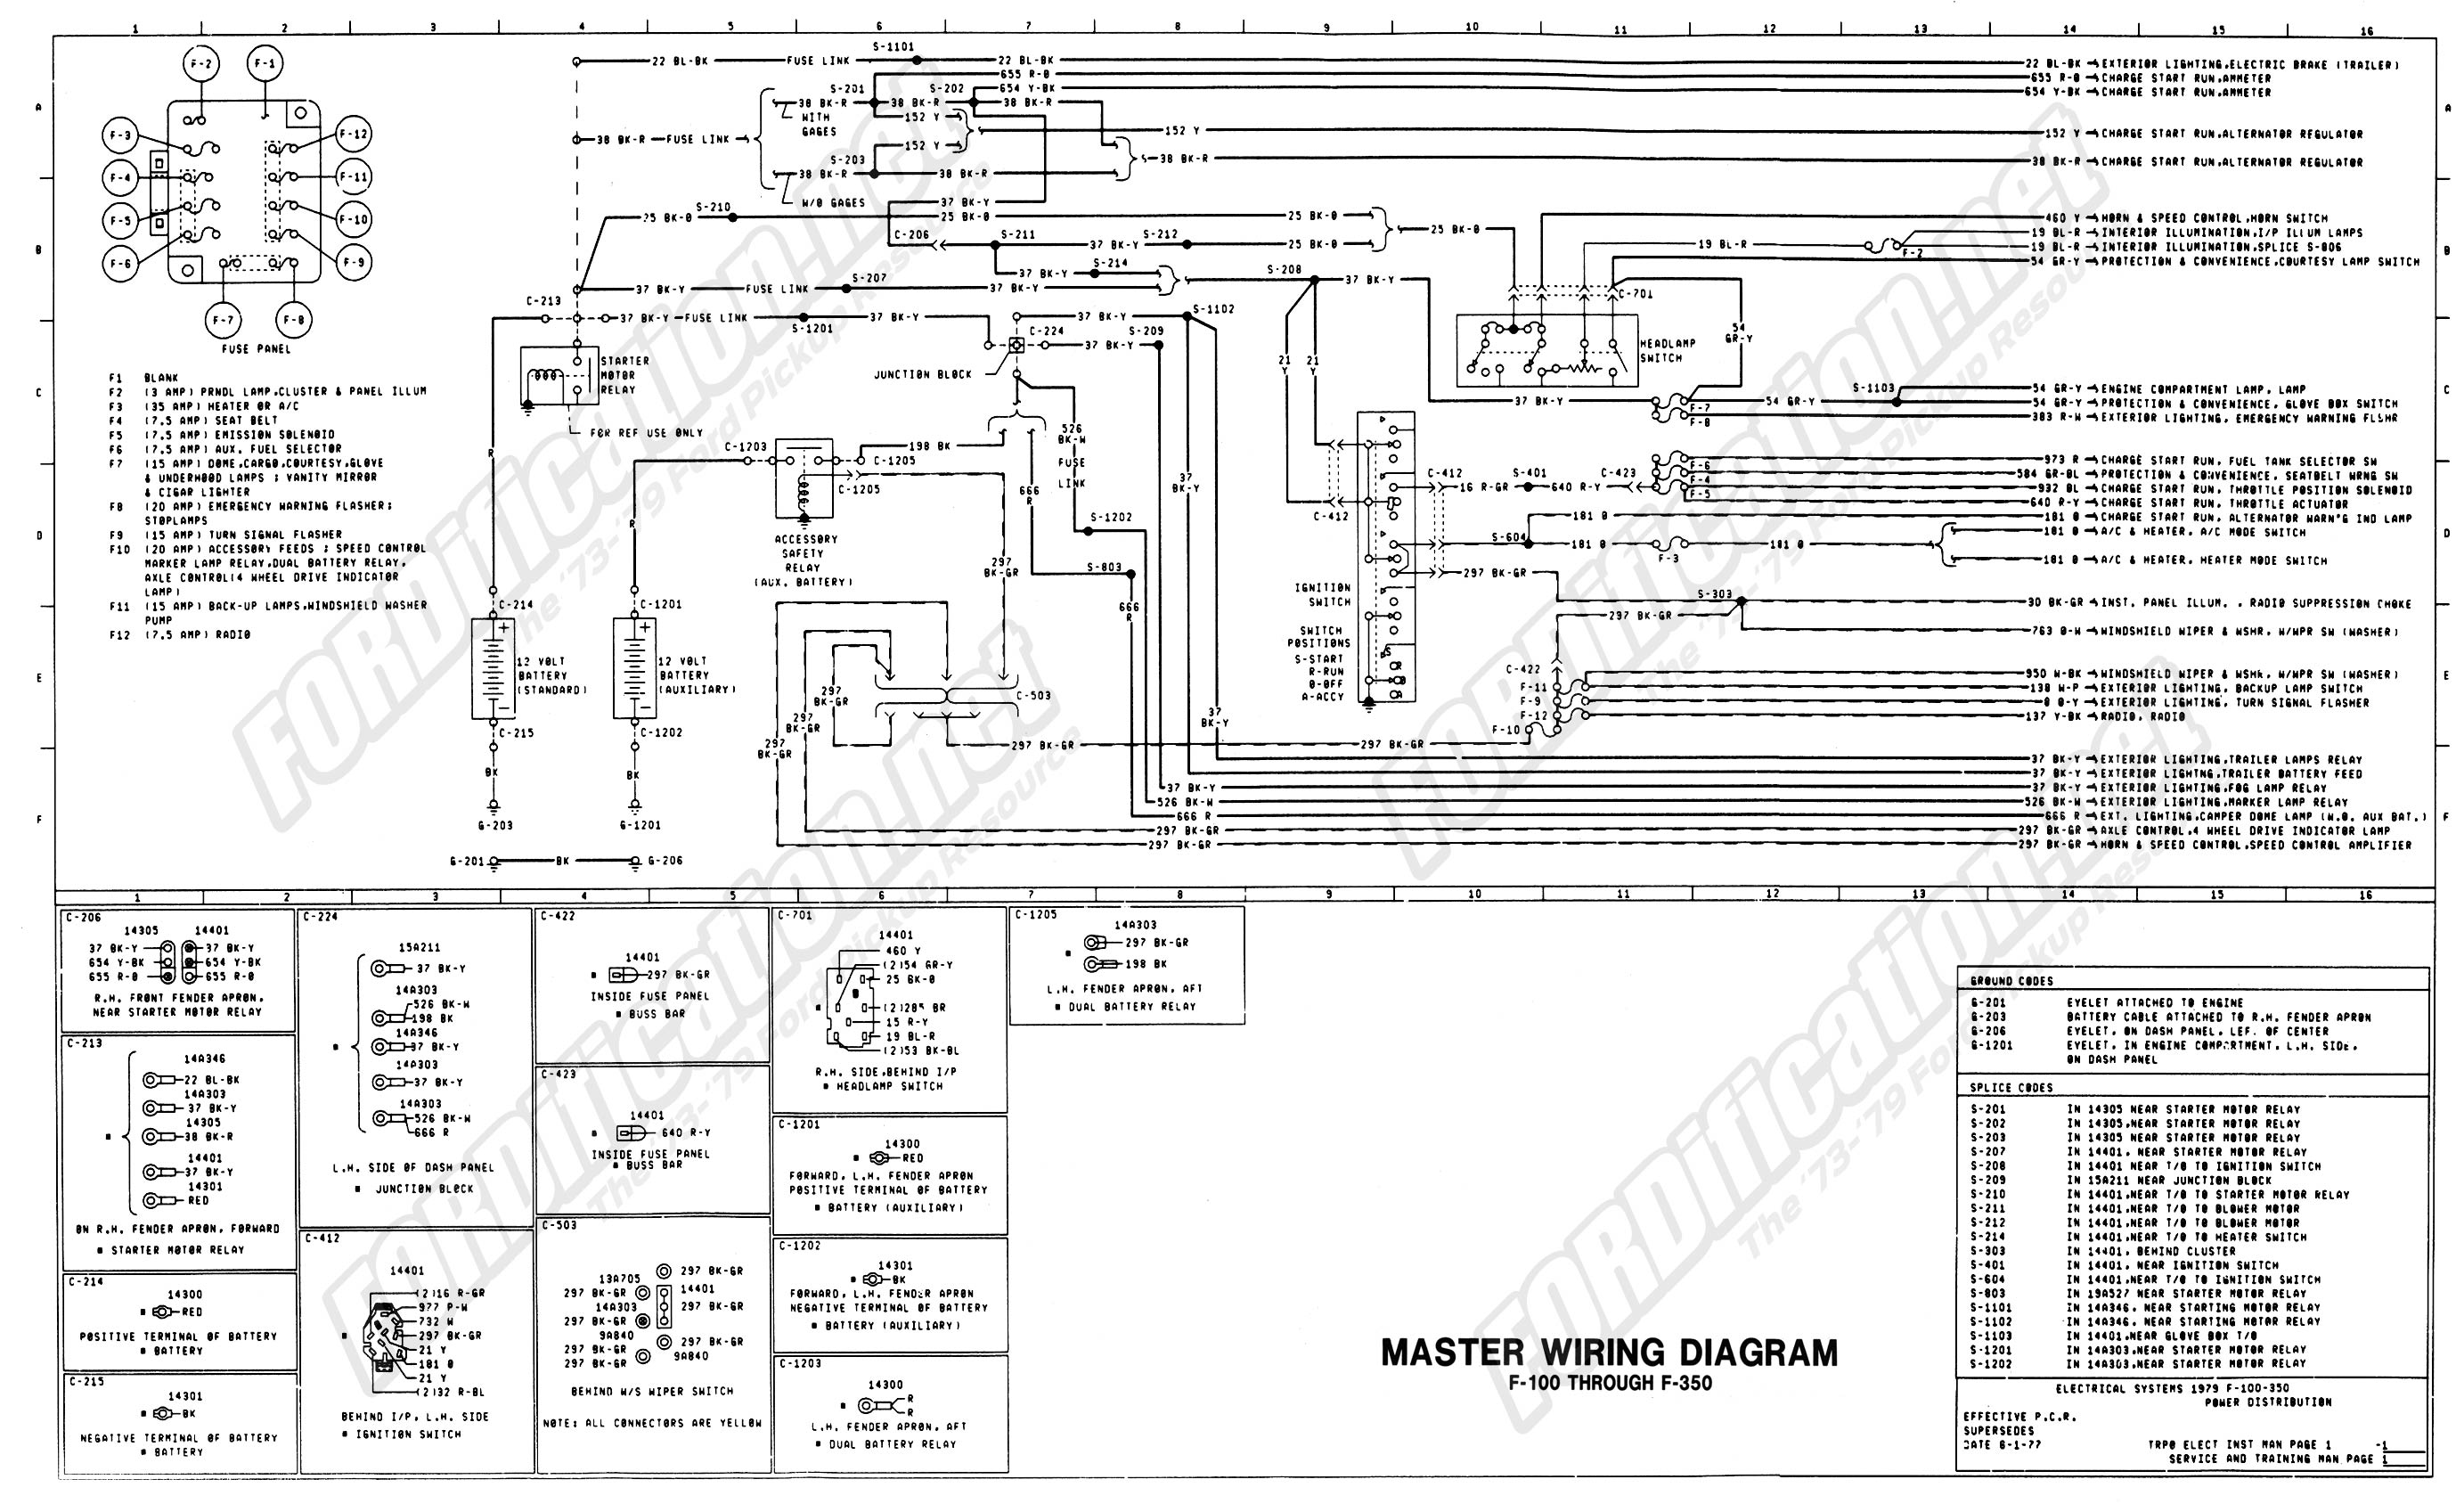 1999 sterling fuse diagram  1999  free printable wiring